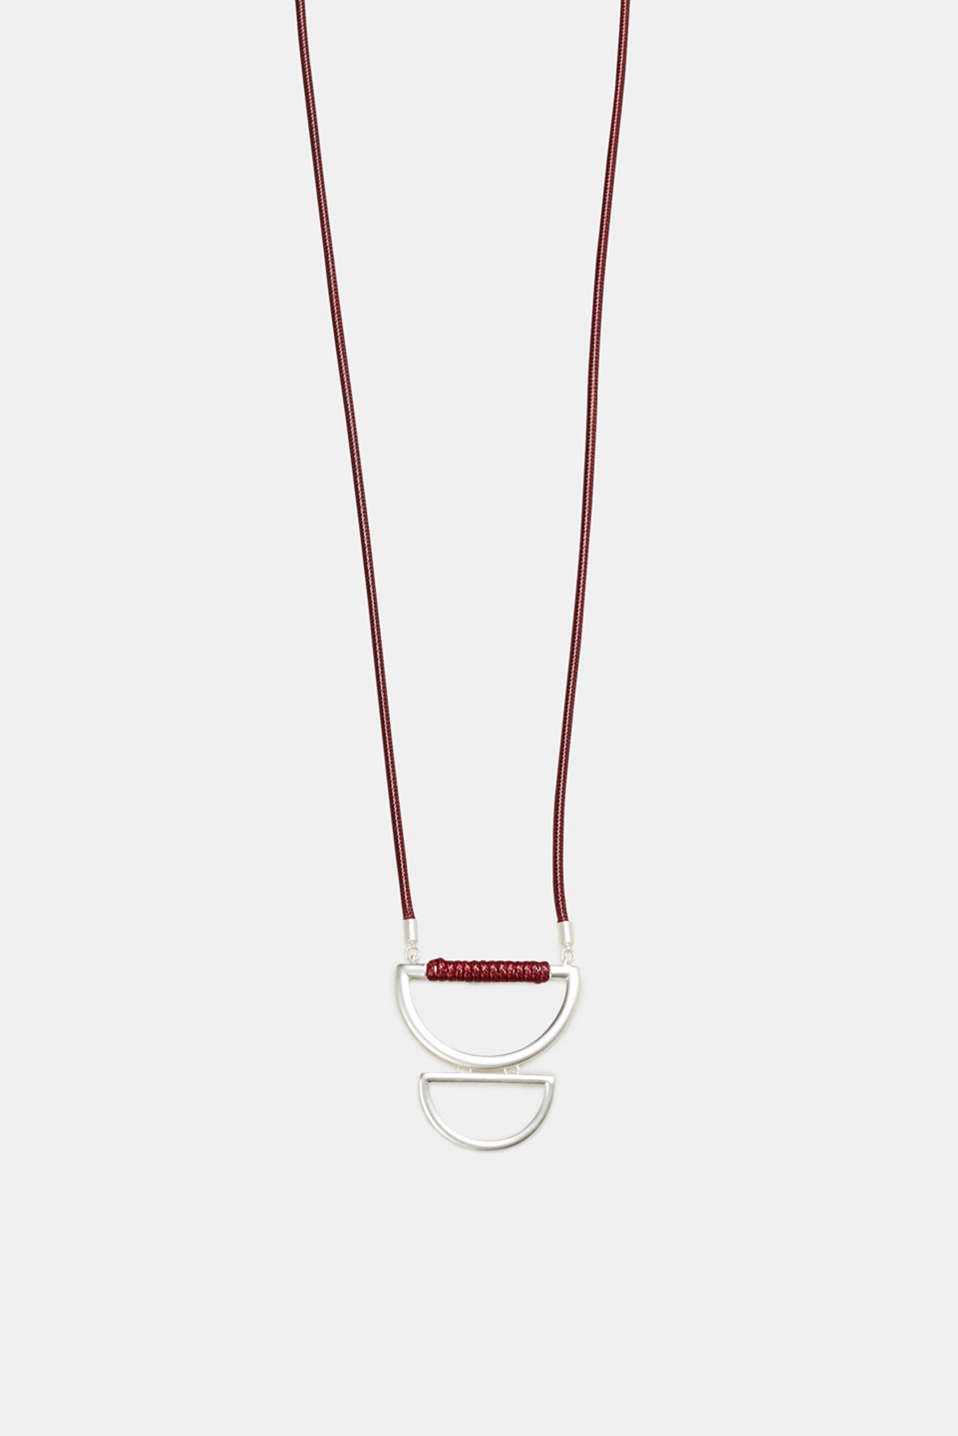 Esprit - Long necklace with a graphic pendant